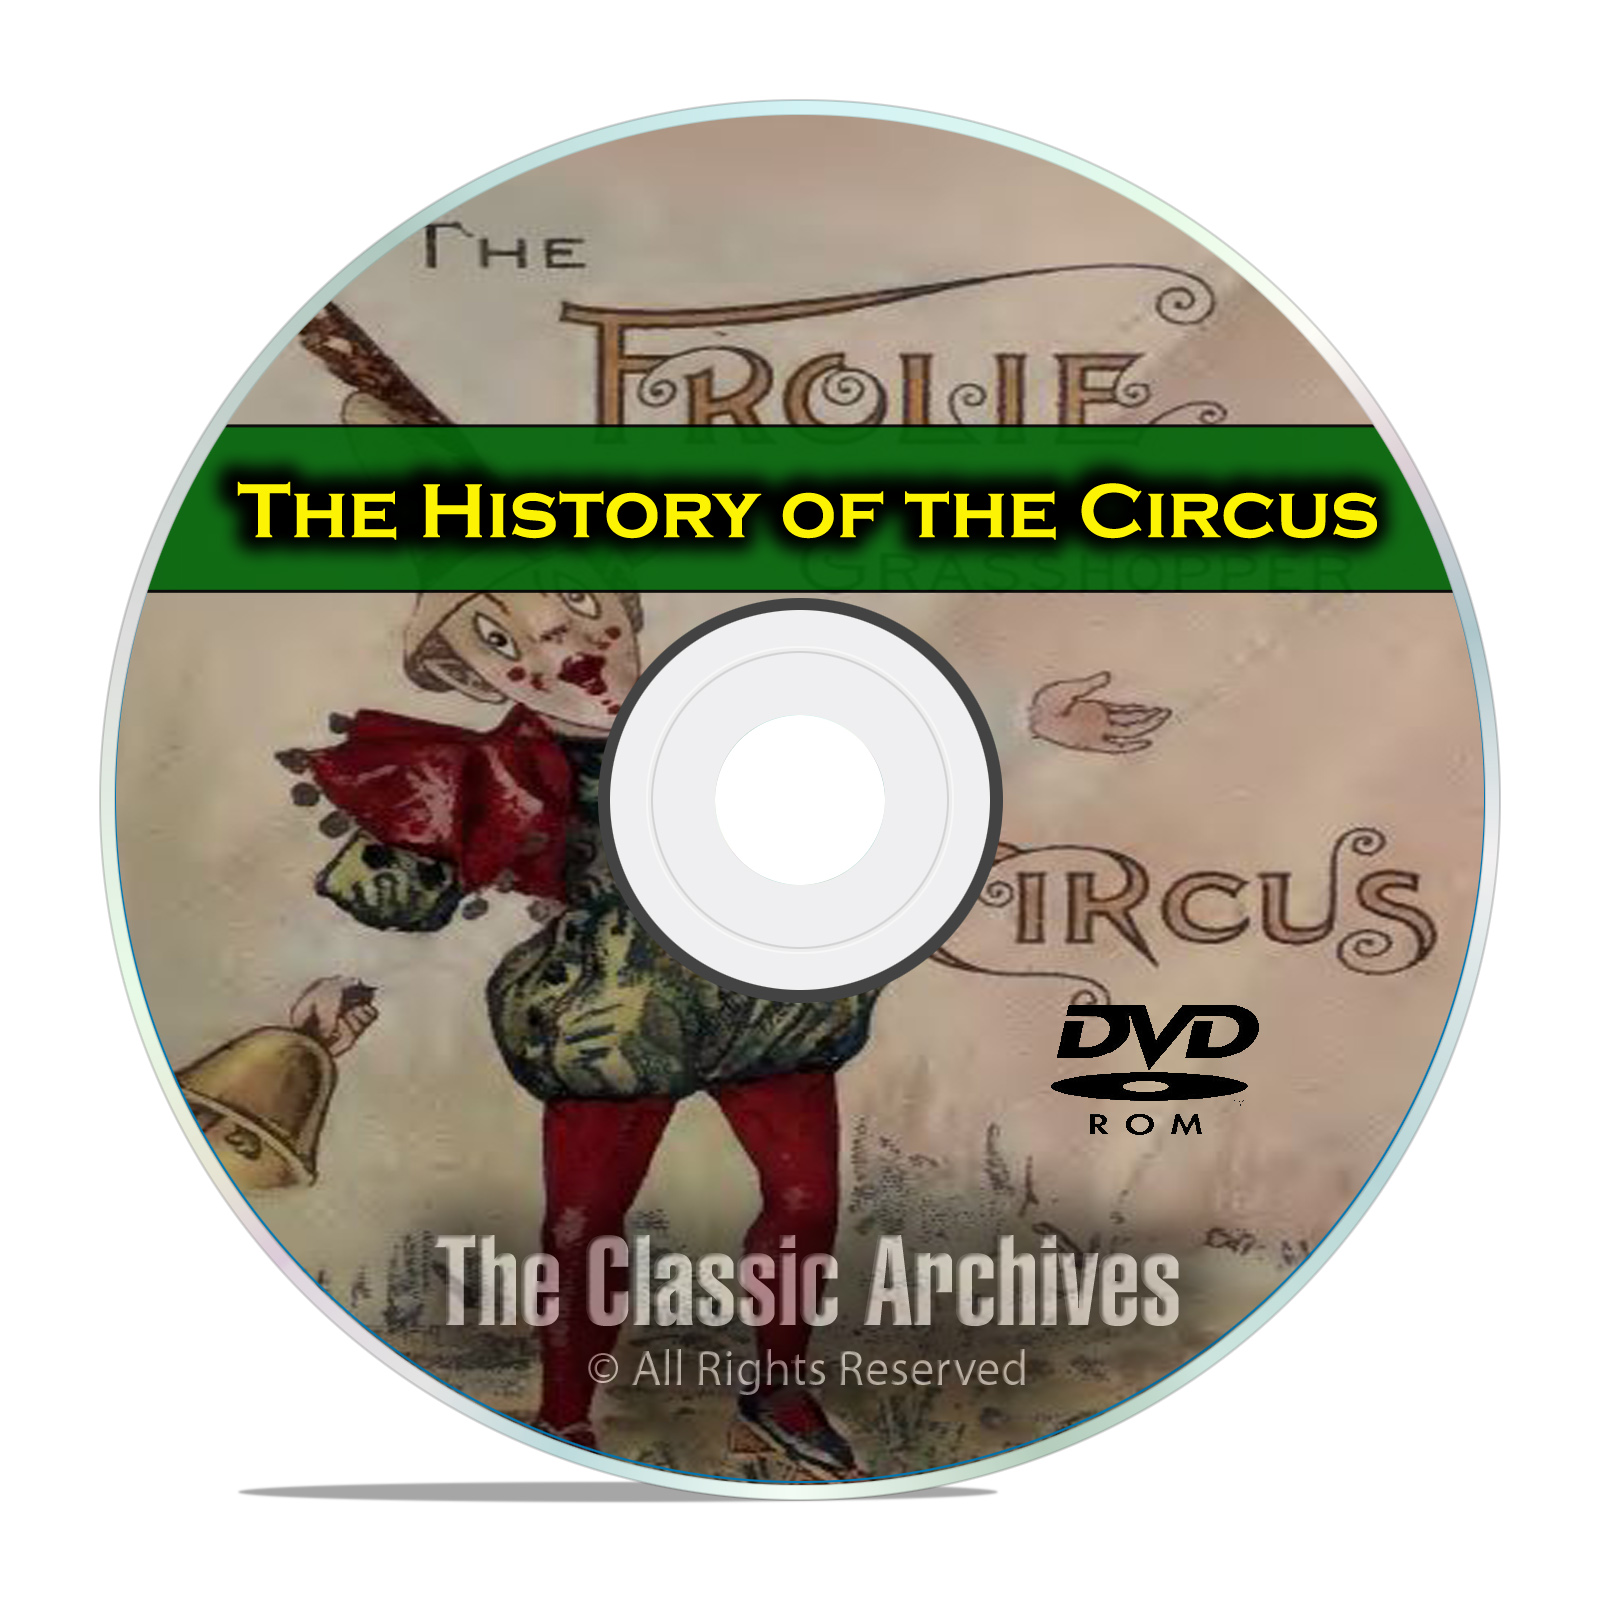 The Victorian Kitchen Garden Dvd The History Of The Circus Ringling Brothers Barnum Bailey